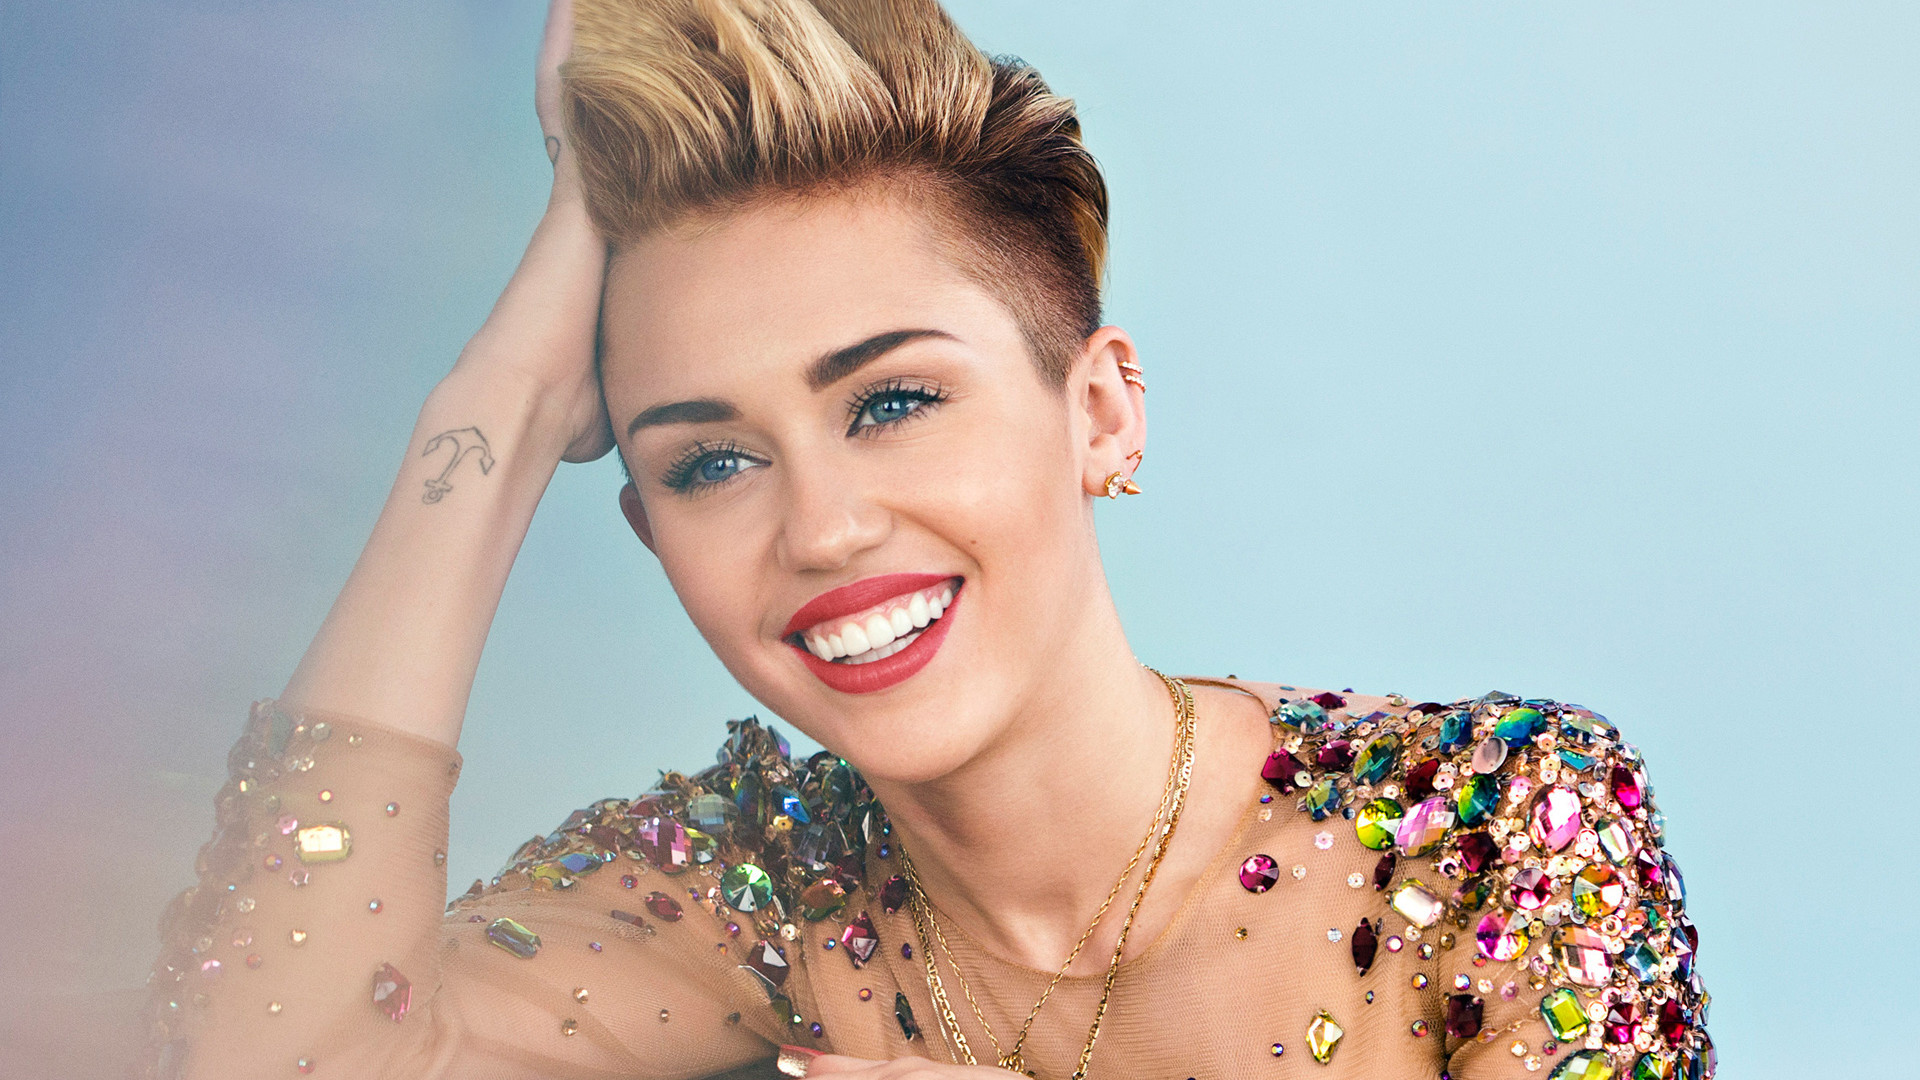 1920x1080 HD Miley Cyrus Wallpapers 01 – HdCoolWallpapers.Com